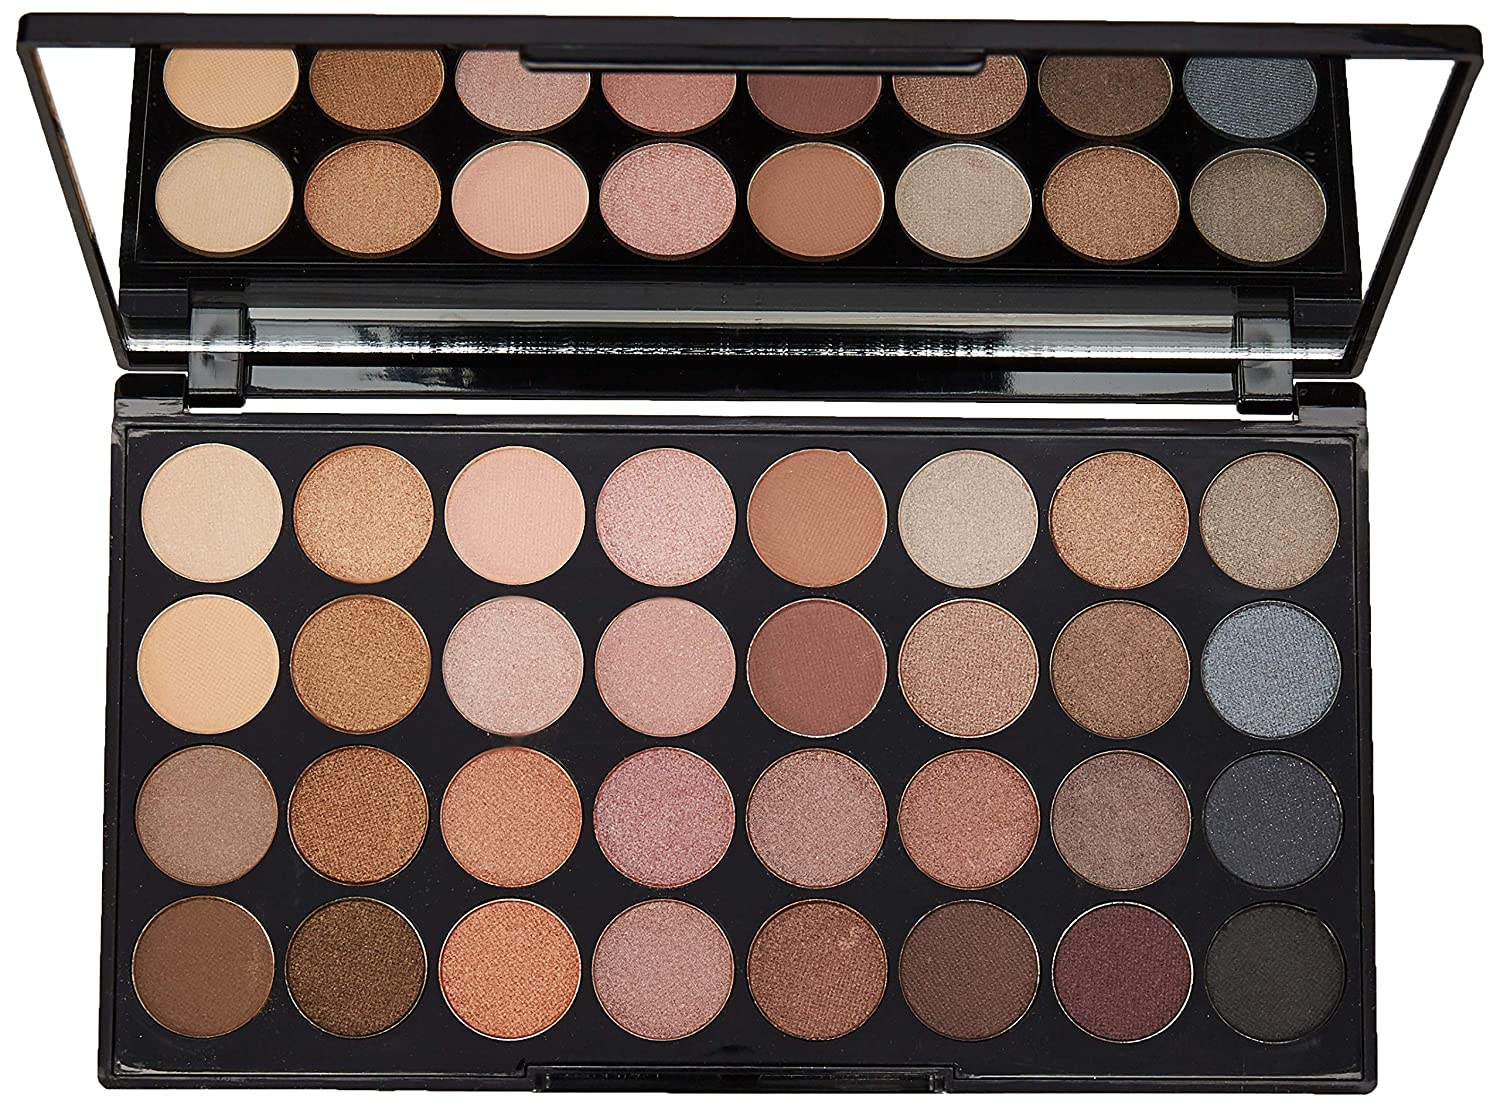 Makeup Revolution Ultra 32 Shade Eyeshadow Palette BEYOND FLAWLESS by Makeup Revolution: Amazon.ca: Beauty